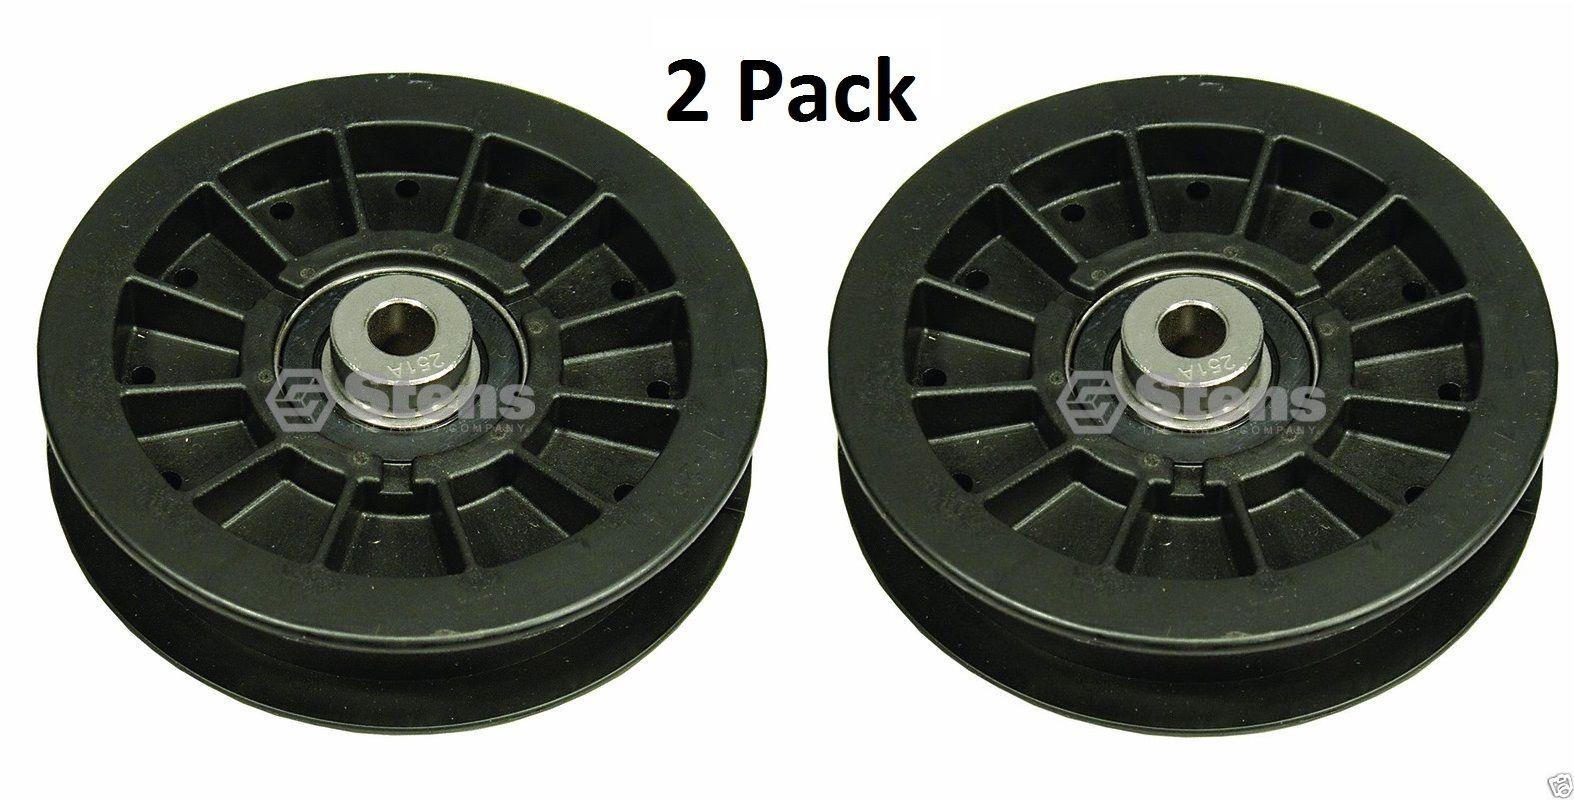 2 Pack Stens 280-511 Flat Idler Pulley for Murray Exmark Toro 109-3397